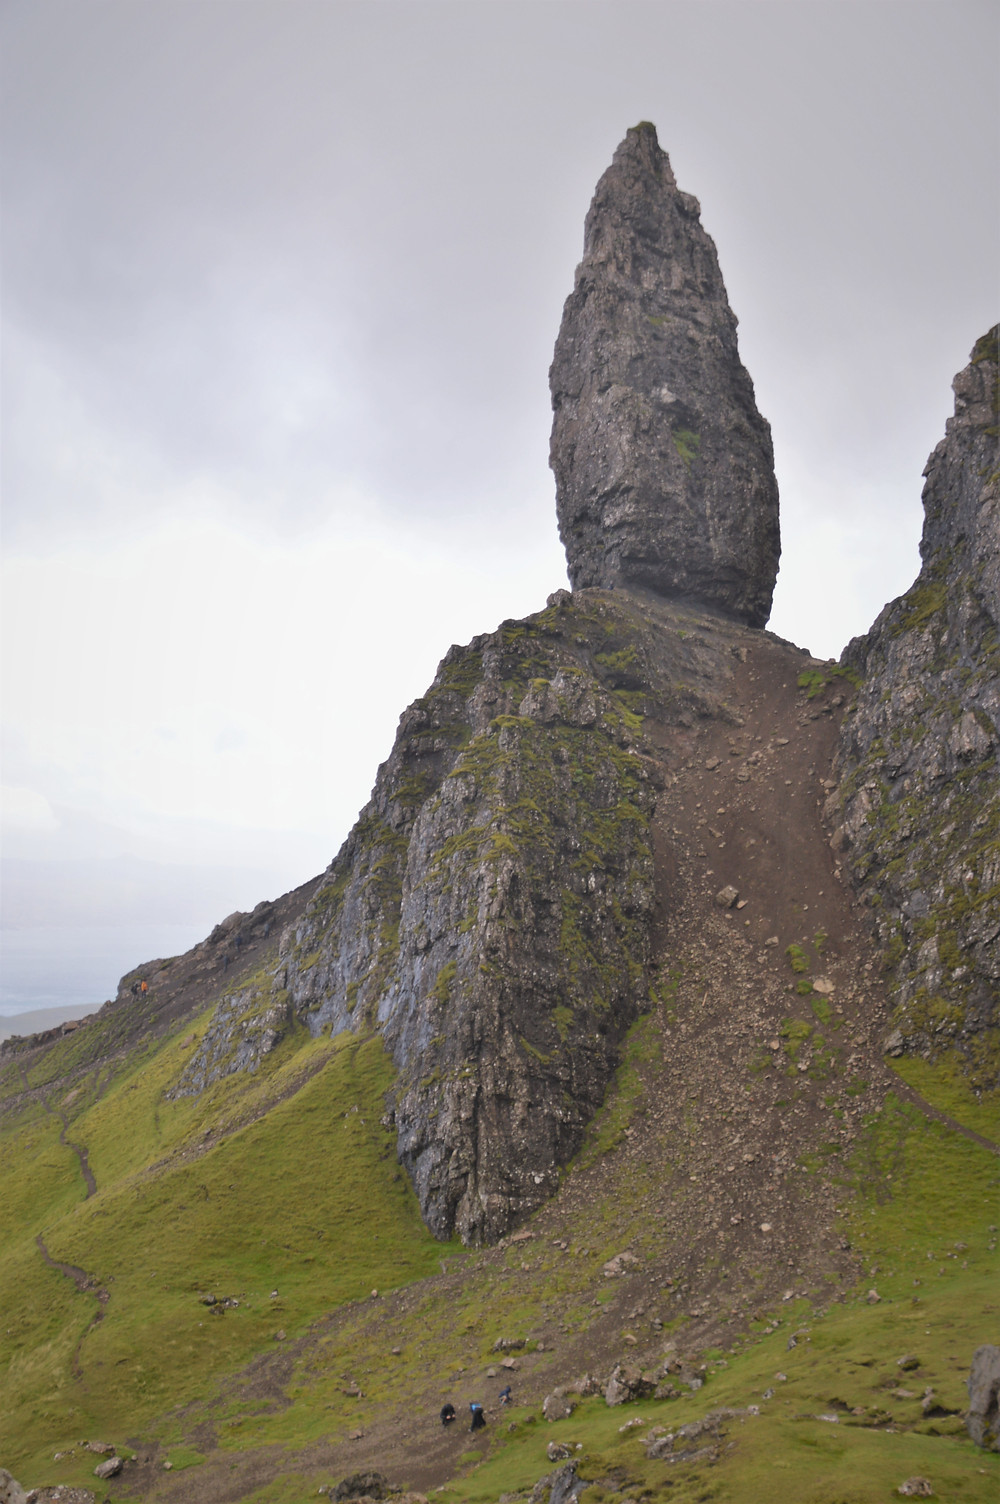 Rock Pinnacles on the Old Man of Storr are remnants of ancient volcano plus. Rock pinnacles tower over hikers on the trail. Isle of Skye